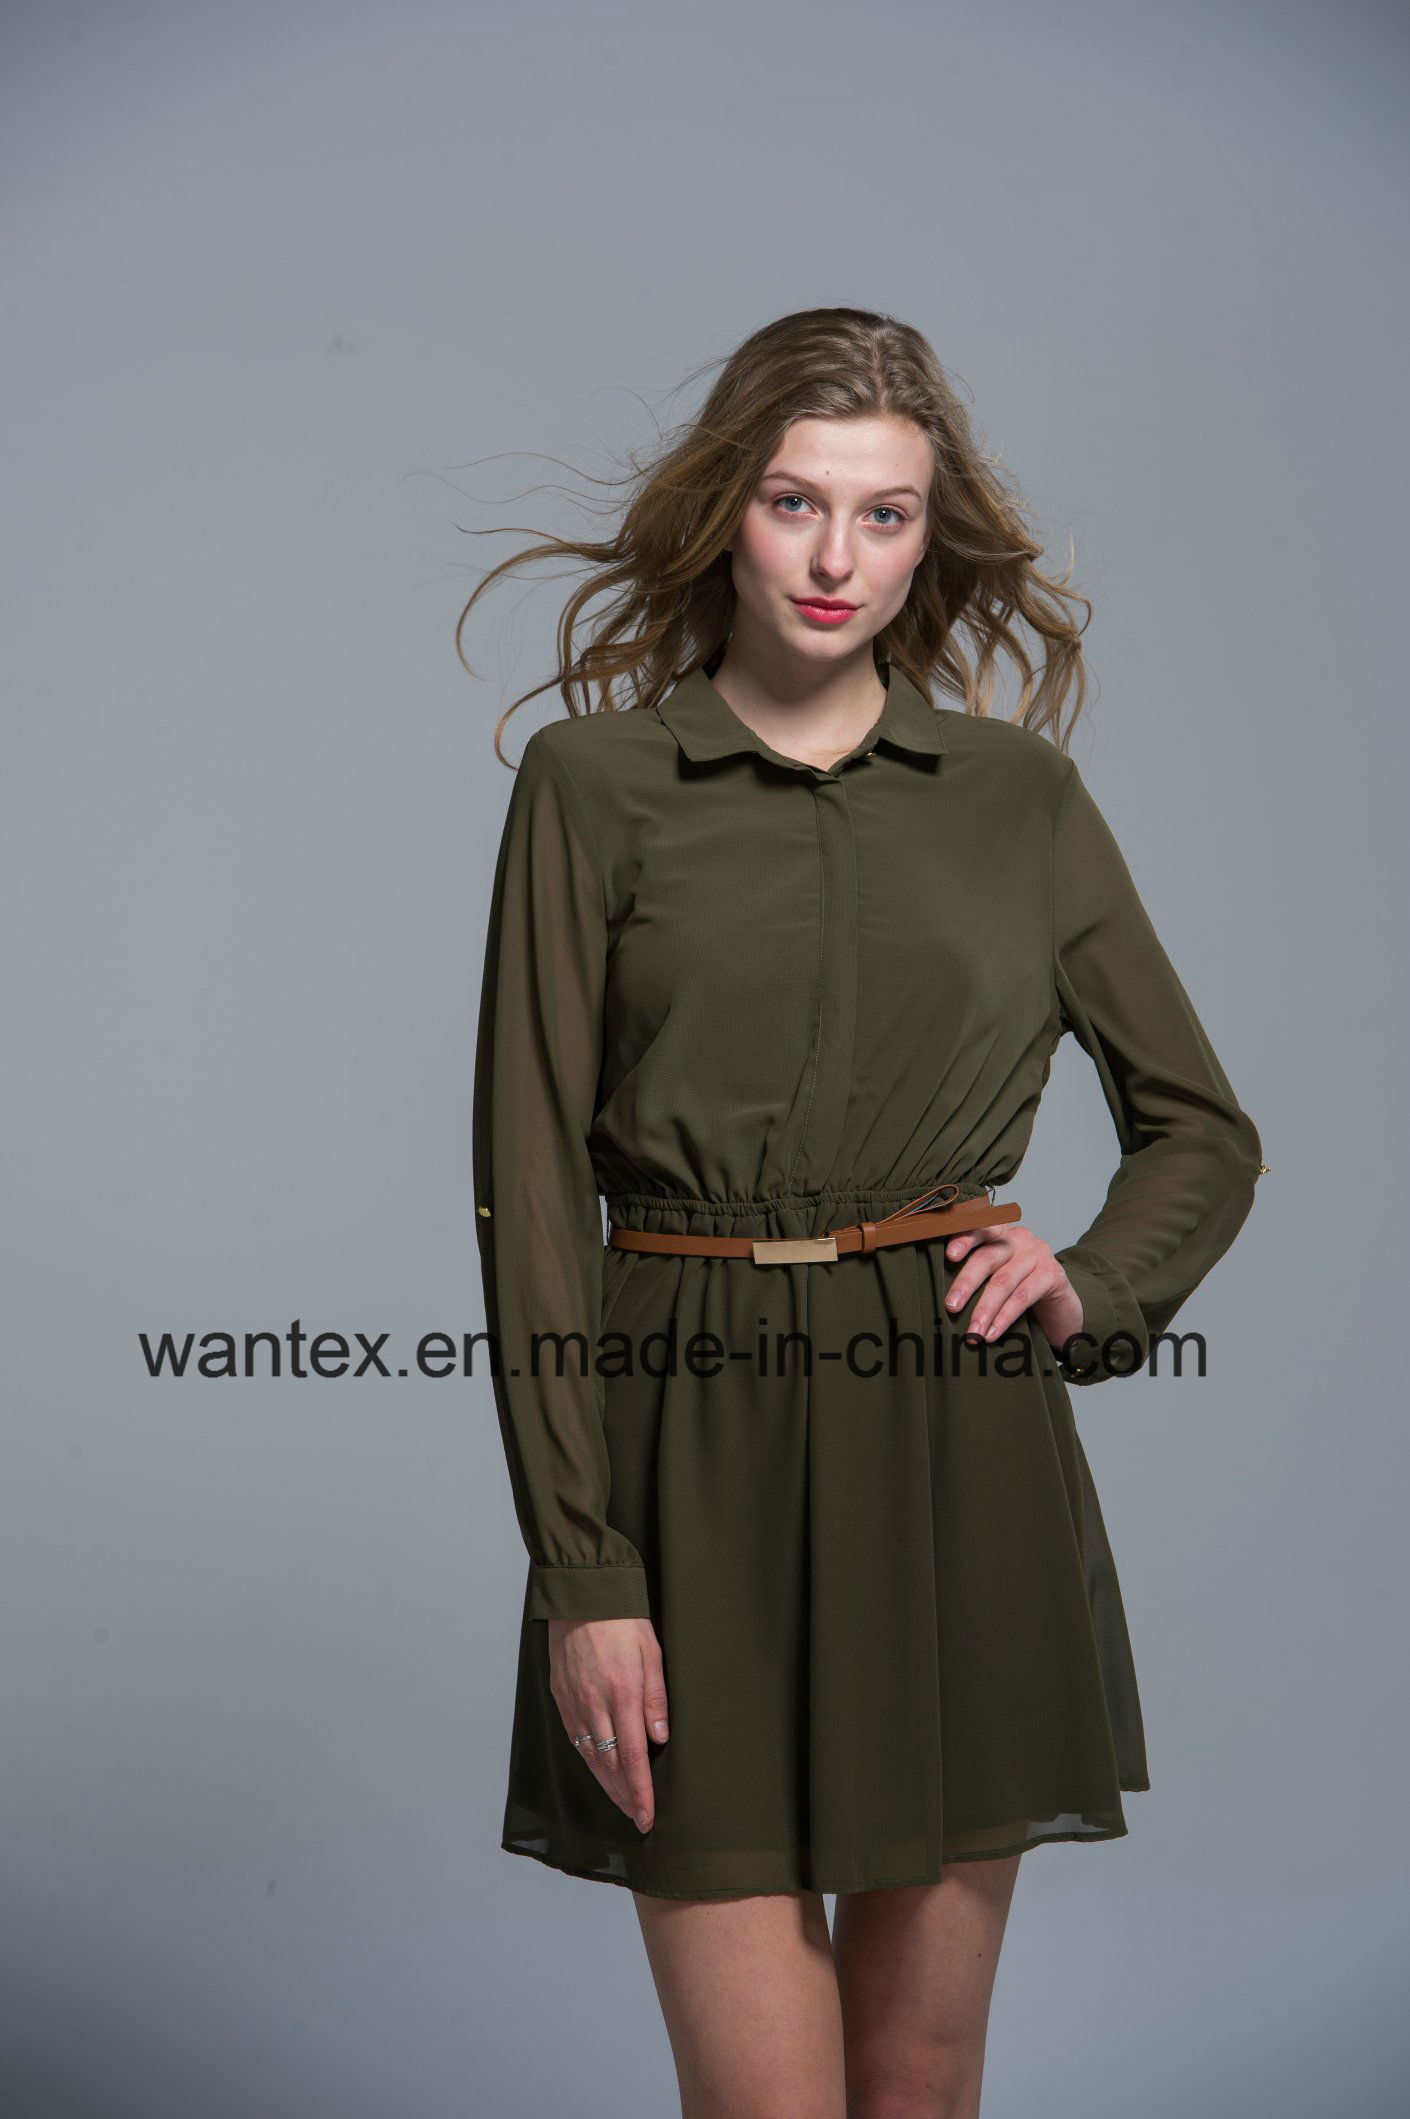 Ladies Dress 100% Polyester Spring Autumn Summer Fashion Includ Belt Green